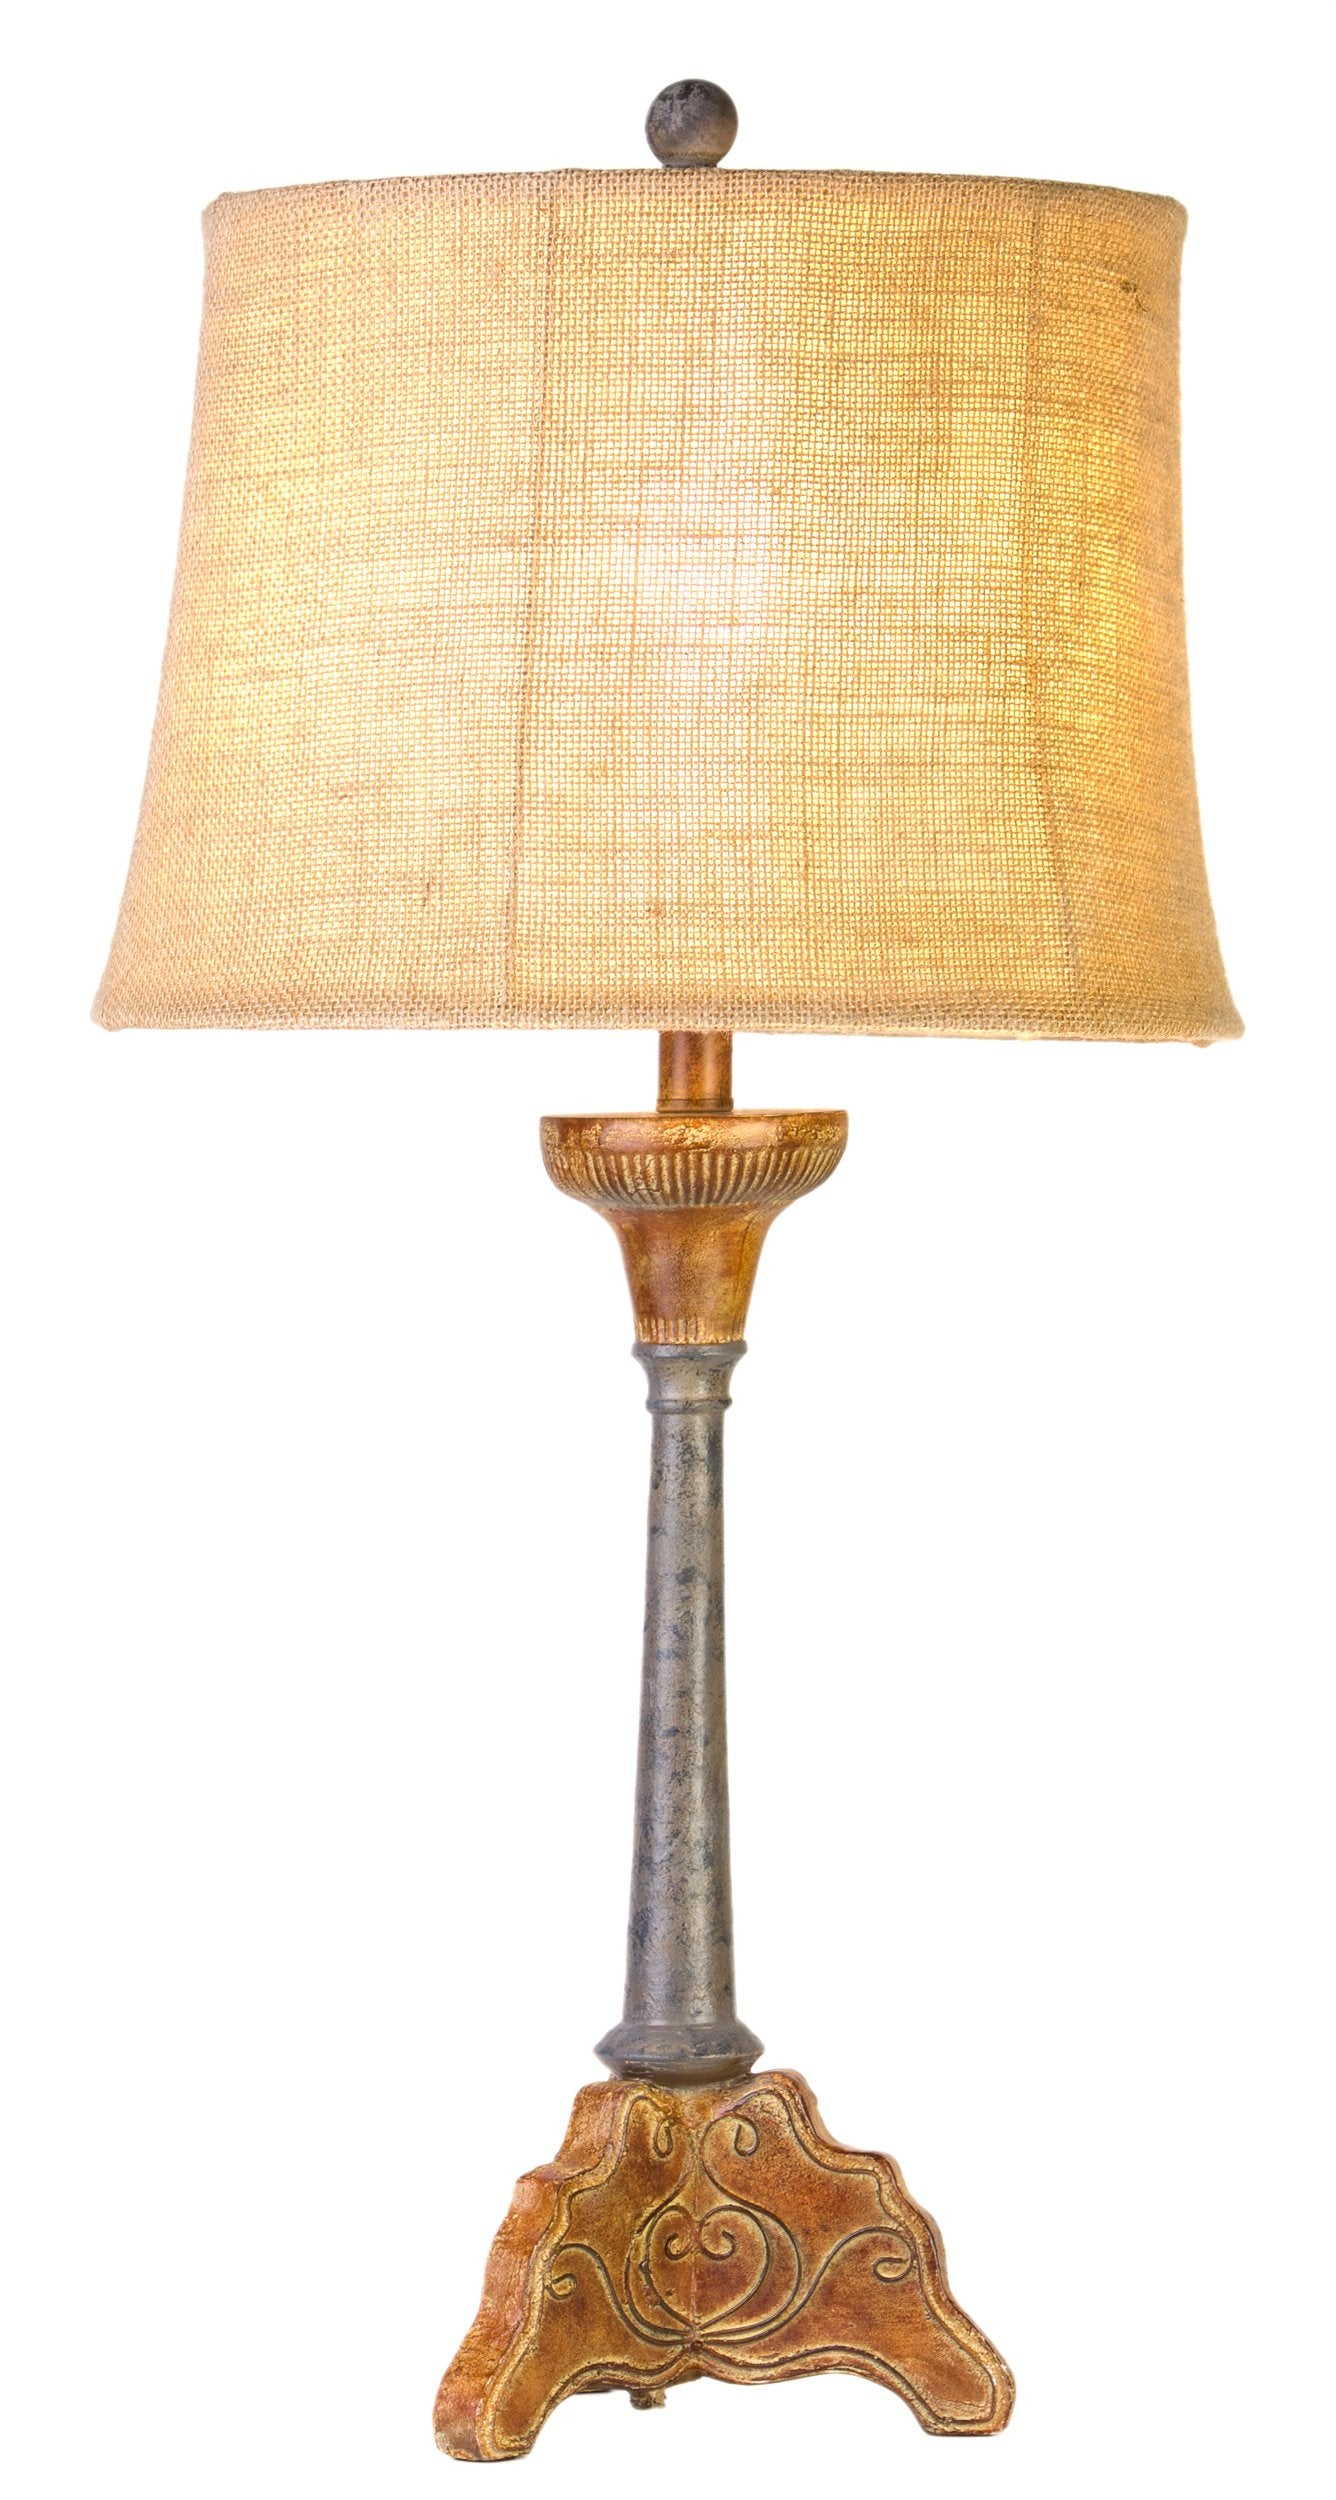 CL5055 - Faux Metal Table Lamp by Vintage Direct - ThunderHorseCabin.com